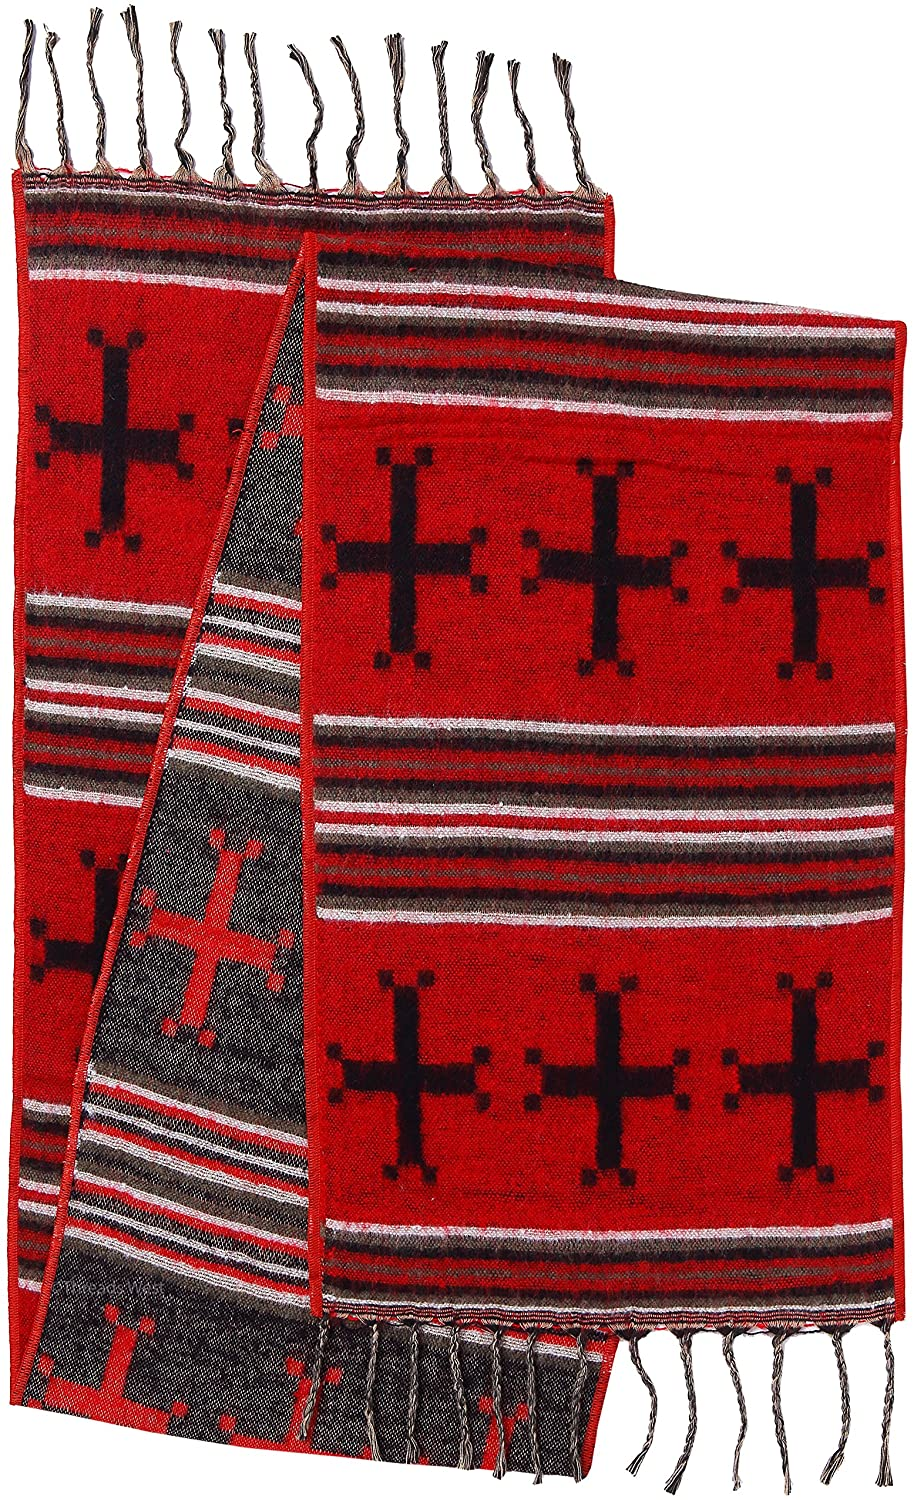 """Rustic Covenant """" Western Scarves Collection """" Southwest Fashion Scarf for Women, Triple Crosses Red, 12 Inches by 72 Inches"""